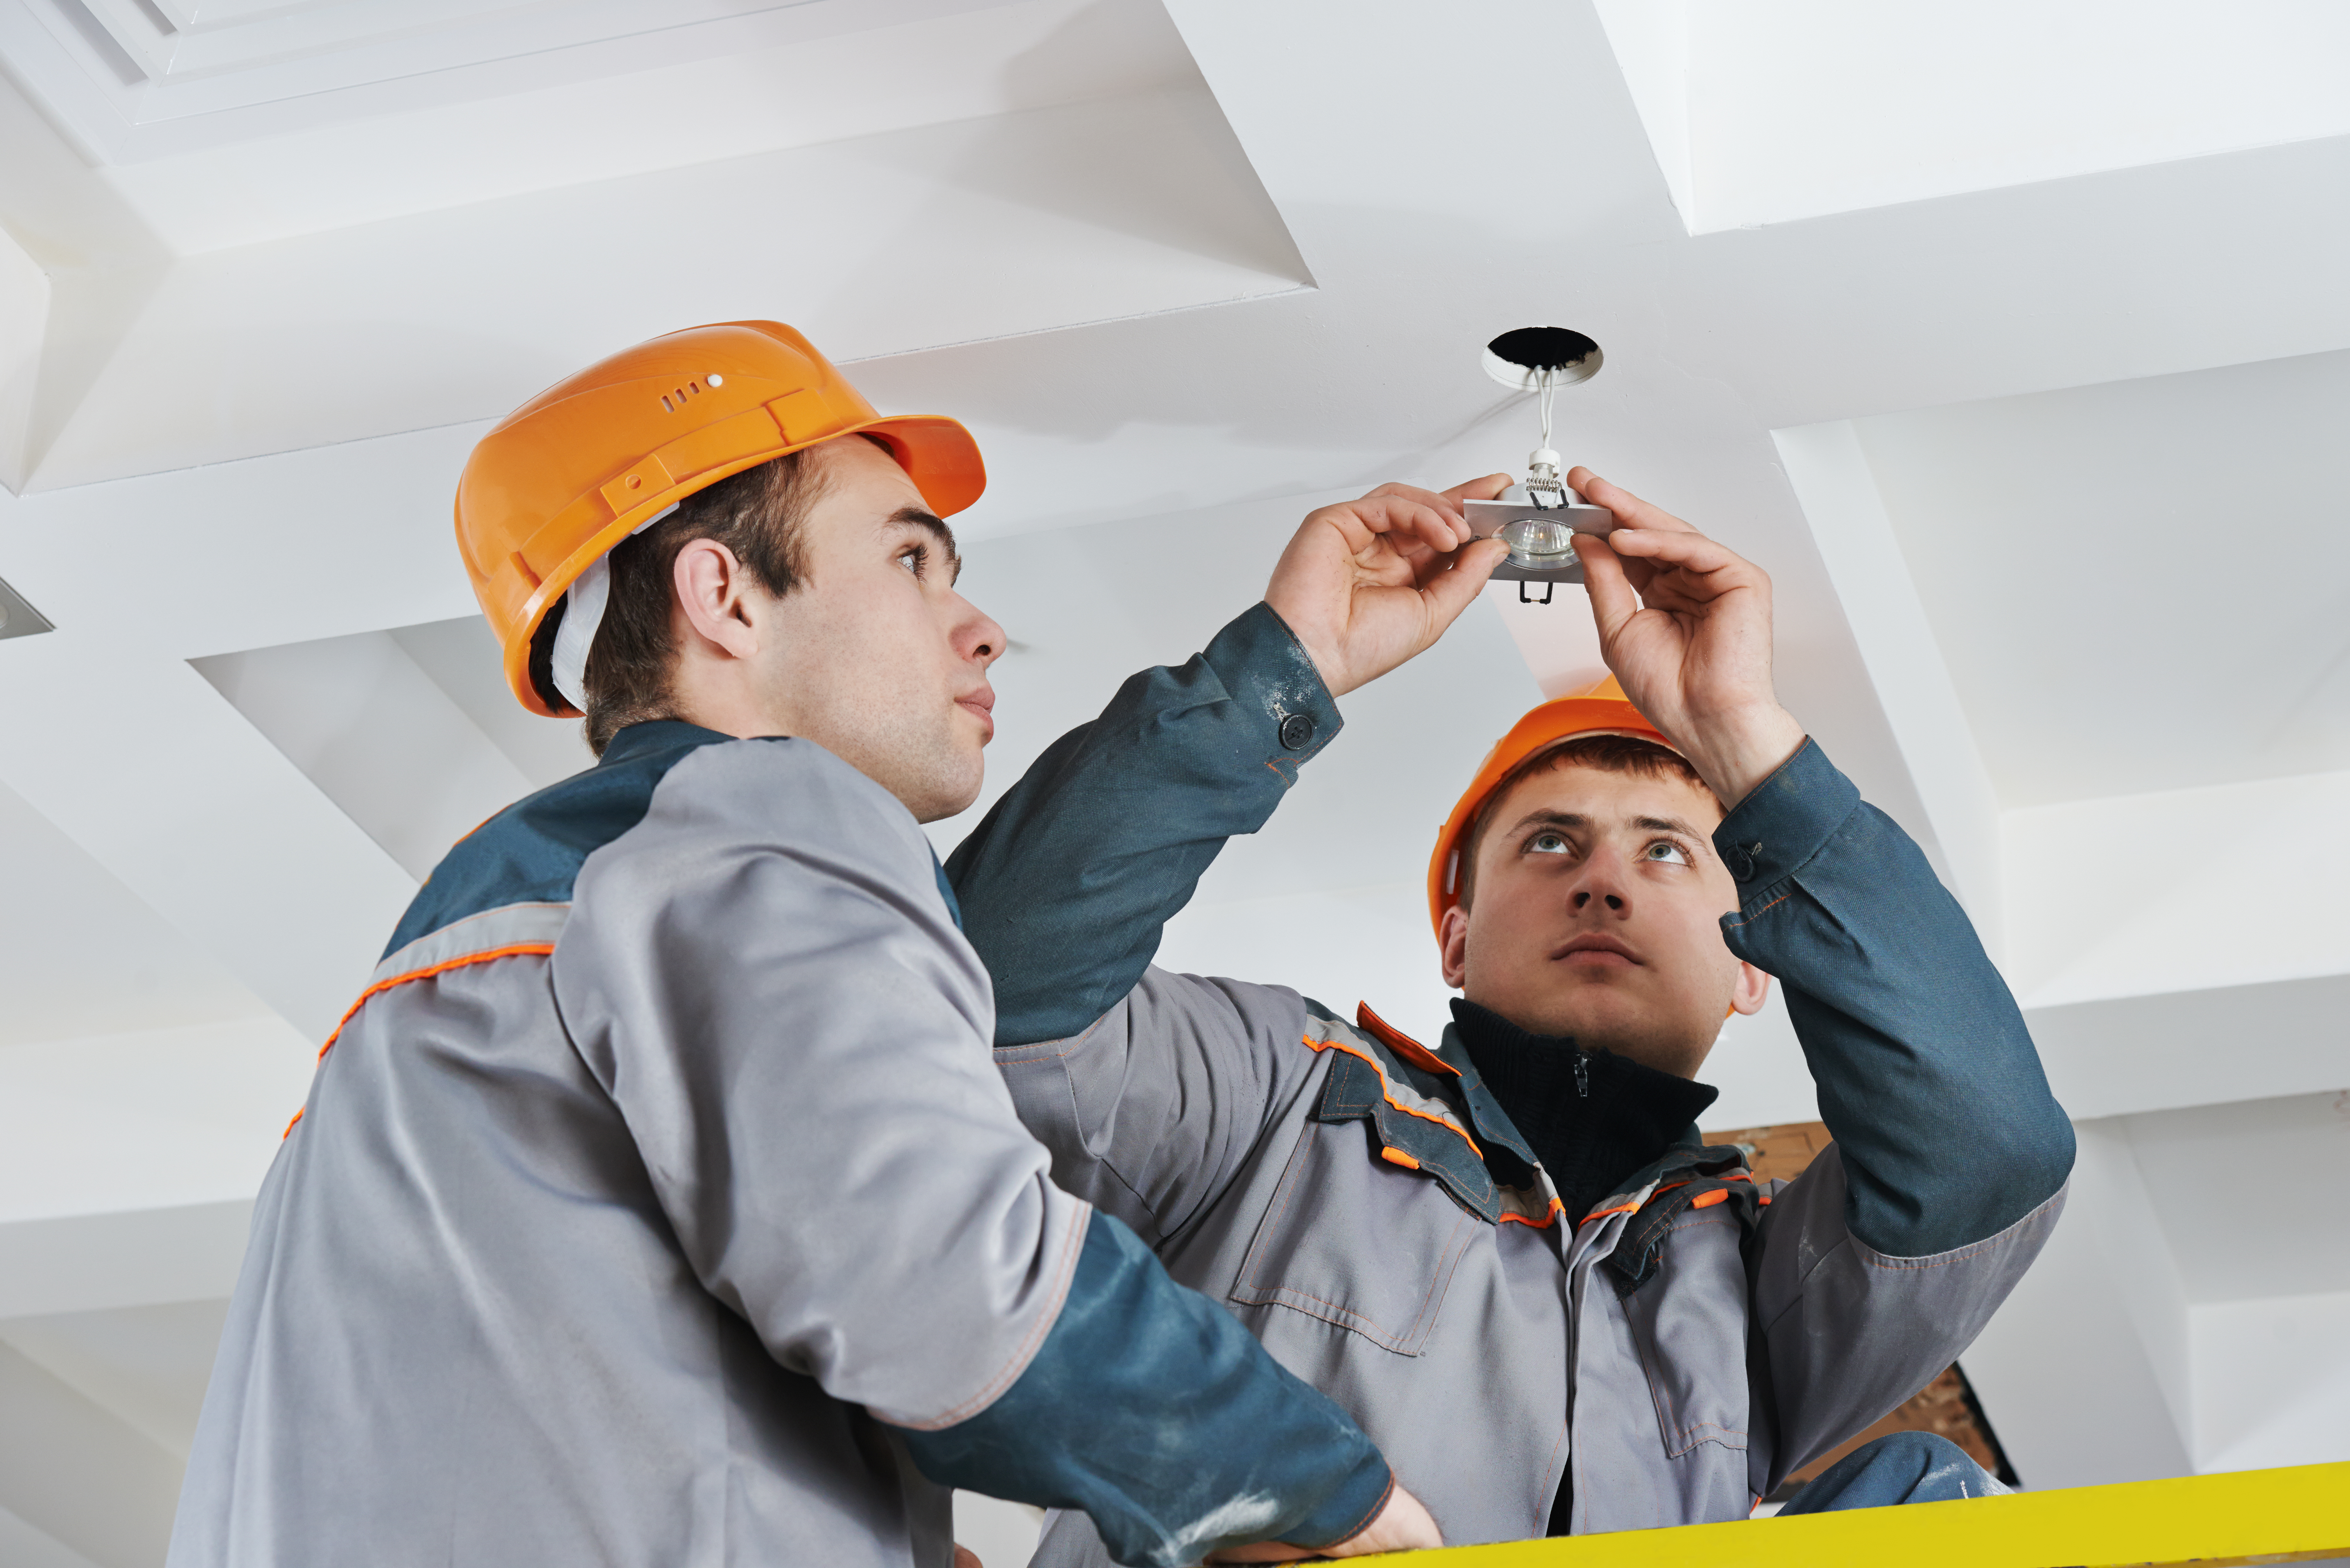 The Electrician Squad | Miami Electrical Contractor